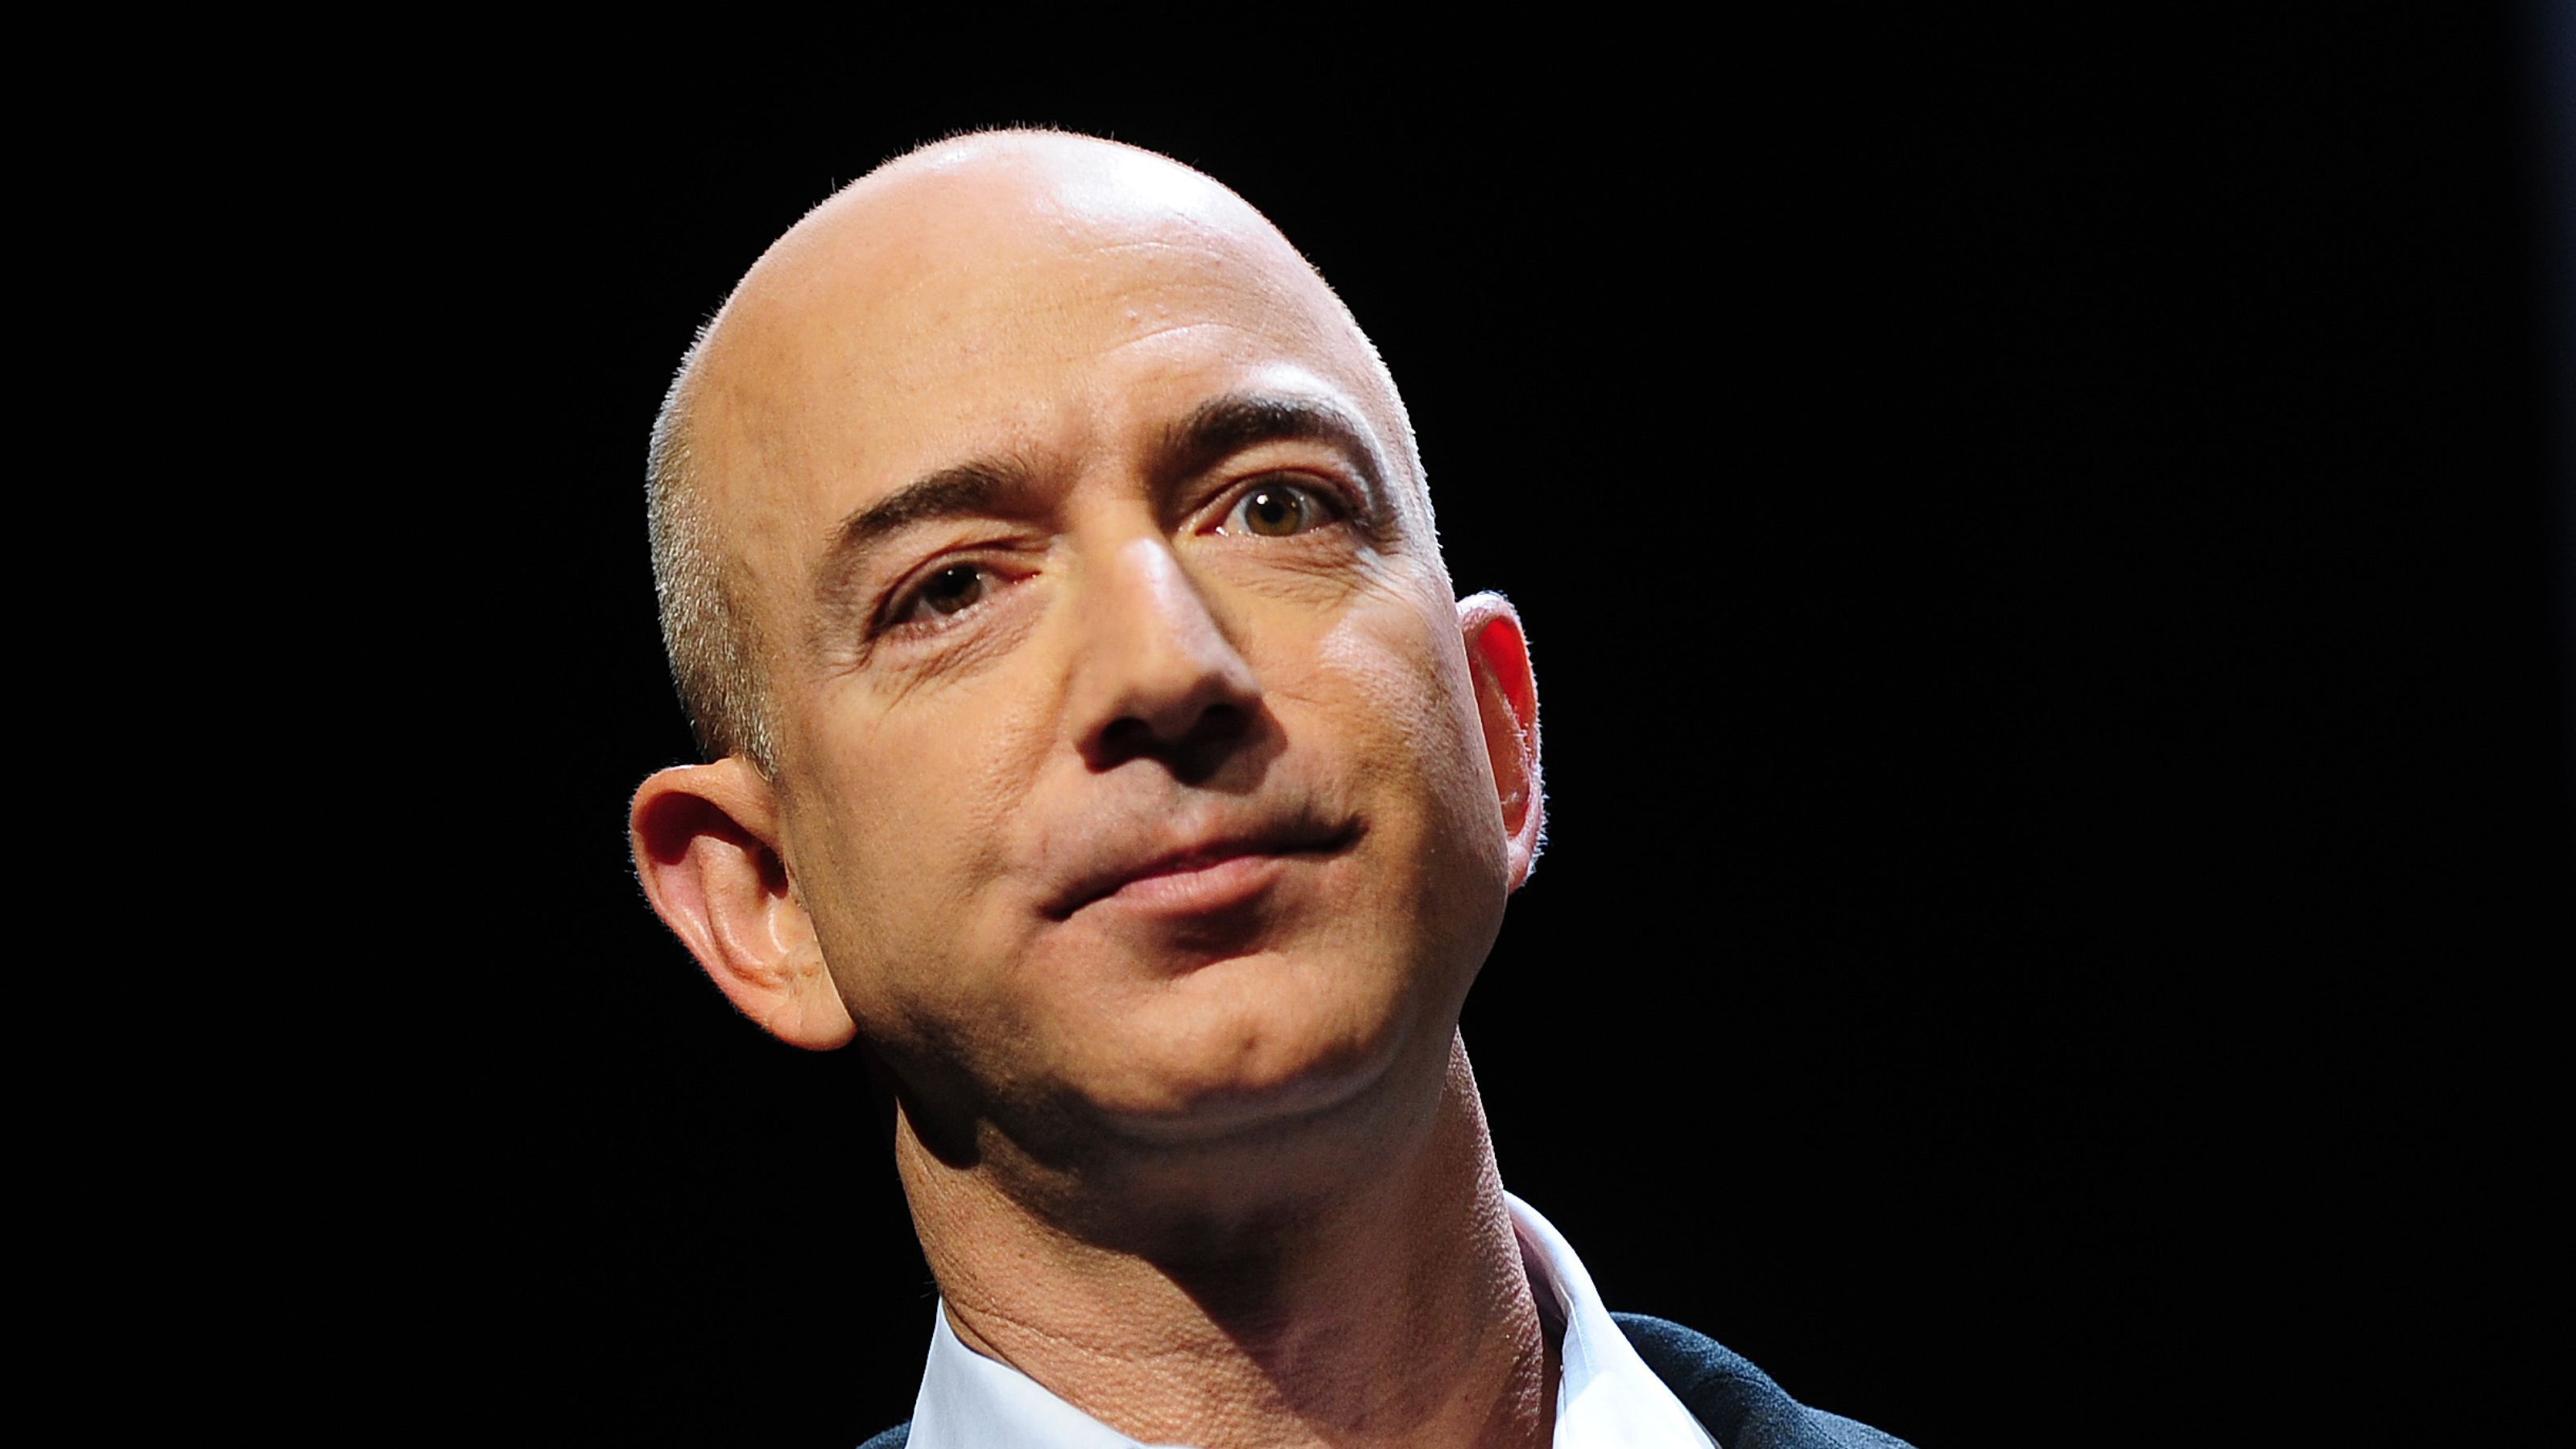 jeff bezos the founder of amazoncom essay On friday, amazon founder and ceo jeff bezos became the richest person in the world.